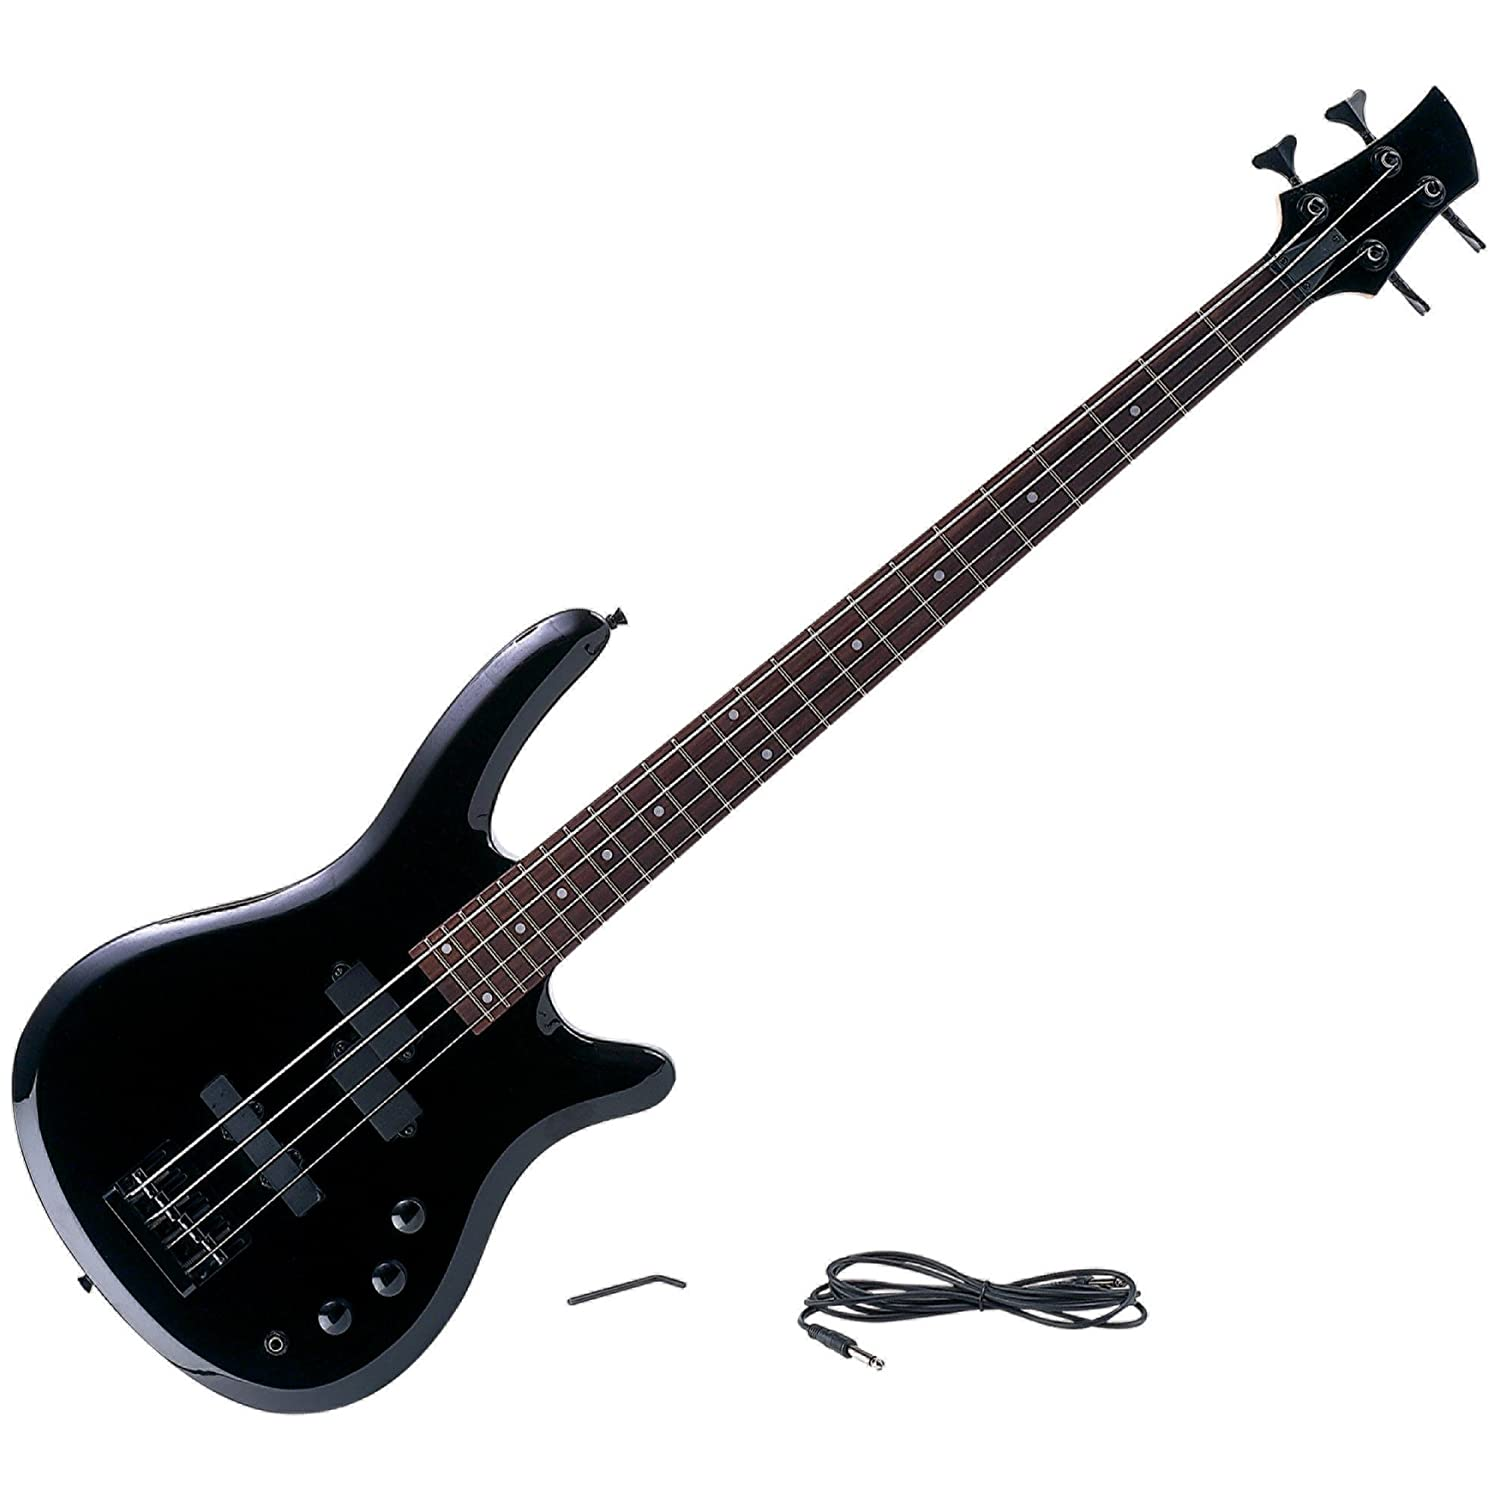 New Maxam 43 Inch Electric Bass 4 String Guitar 2 Tone Controls Phone Jack Strap Buttons Amp Cord B0043E9DMK